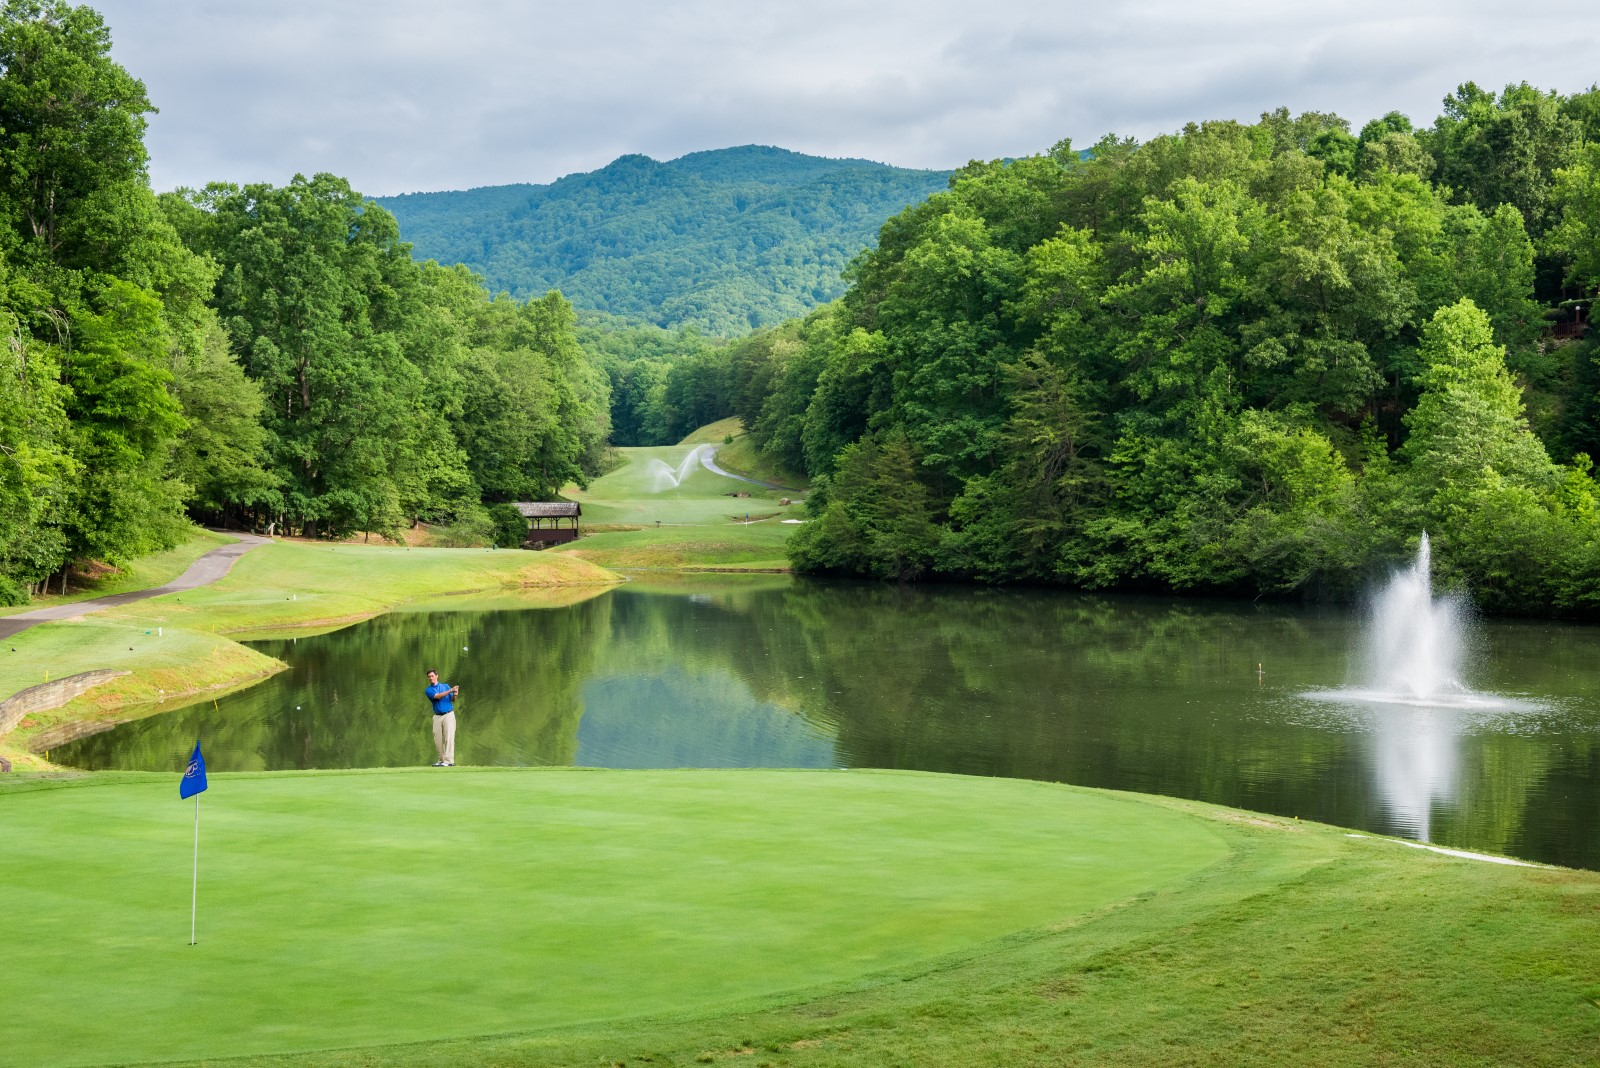 The 16th hole at Rumbling Bald Resort's Bald Mountain Golf Course. This hole was the filming location for one of the scenes in the movie Dirty Dancing.